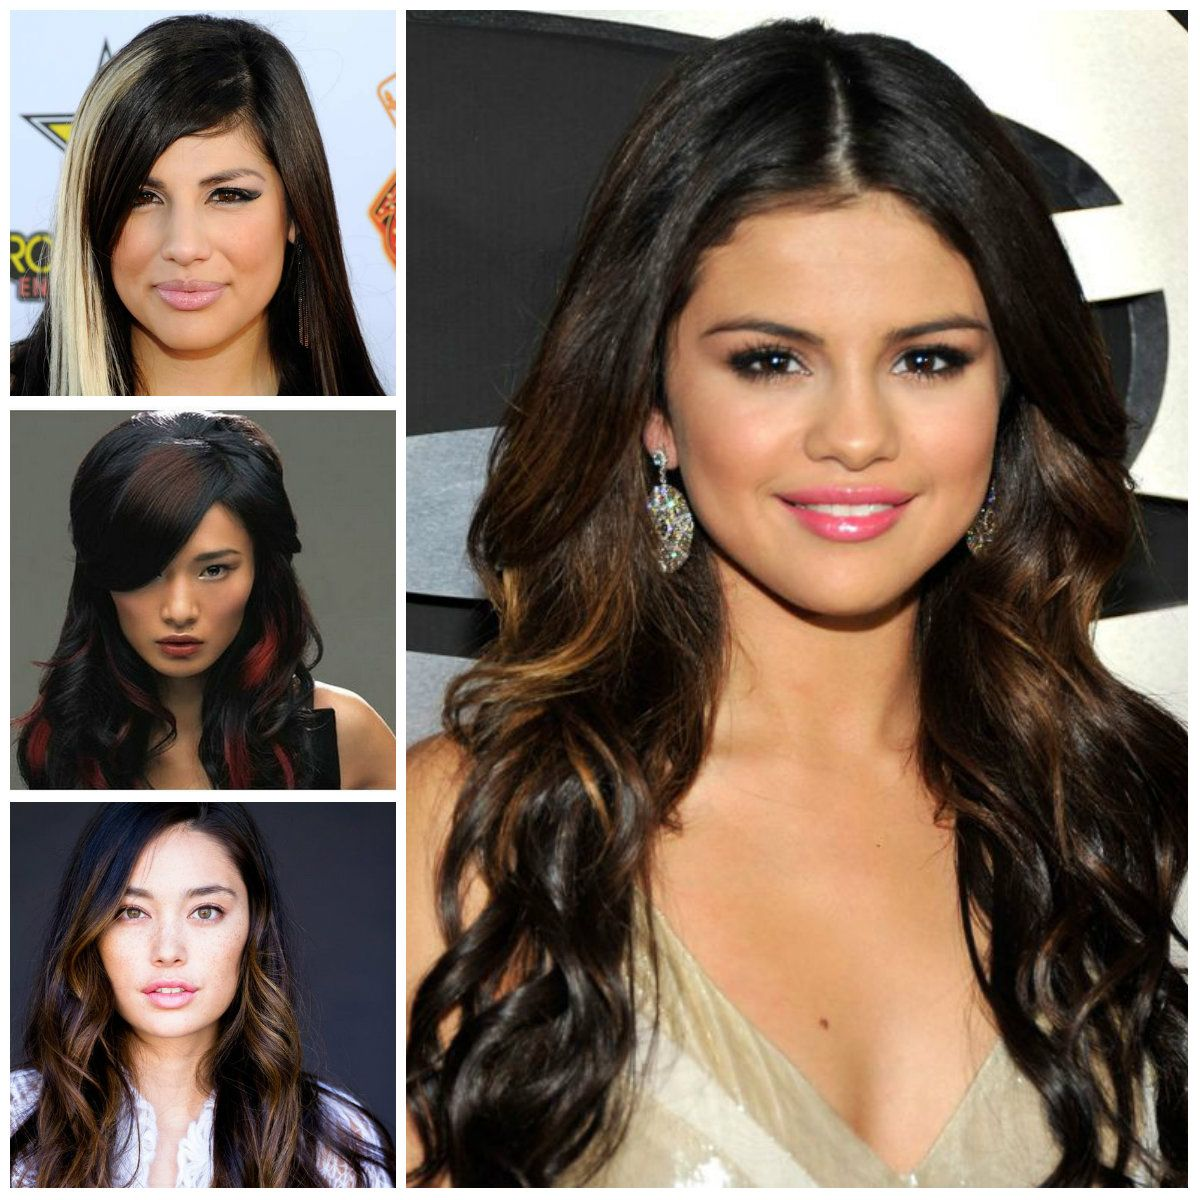 Brown hair color hair colors 2017 trends and ideas for your hair - Black Hair Colors Hair Colors 2017 Trends And Ideas For Your Hair